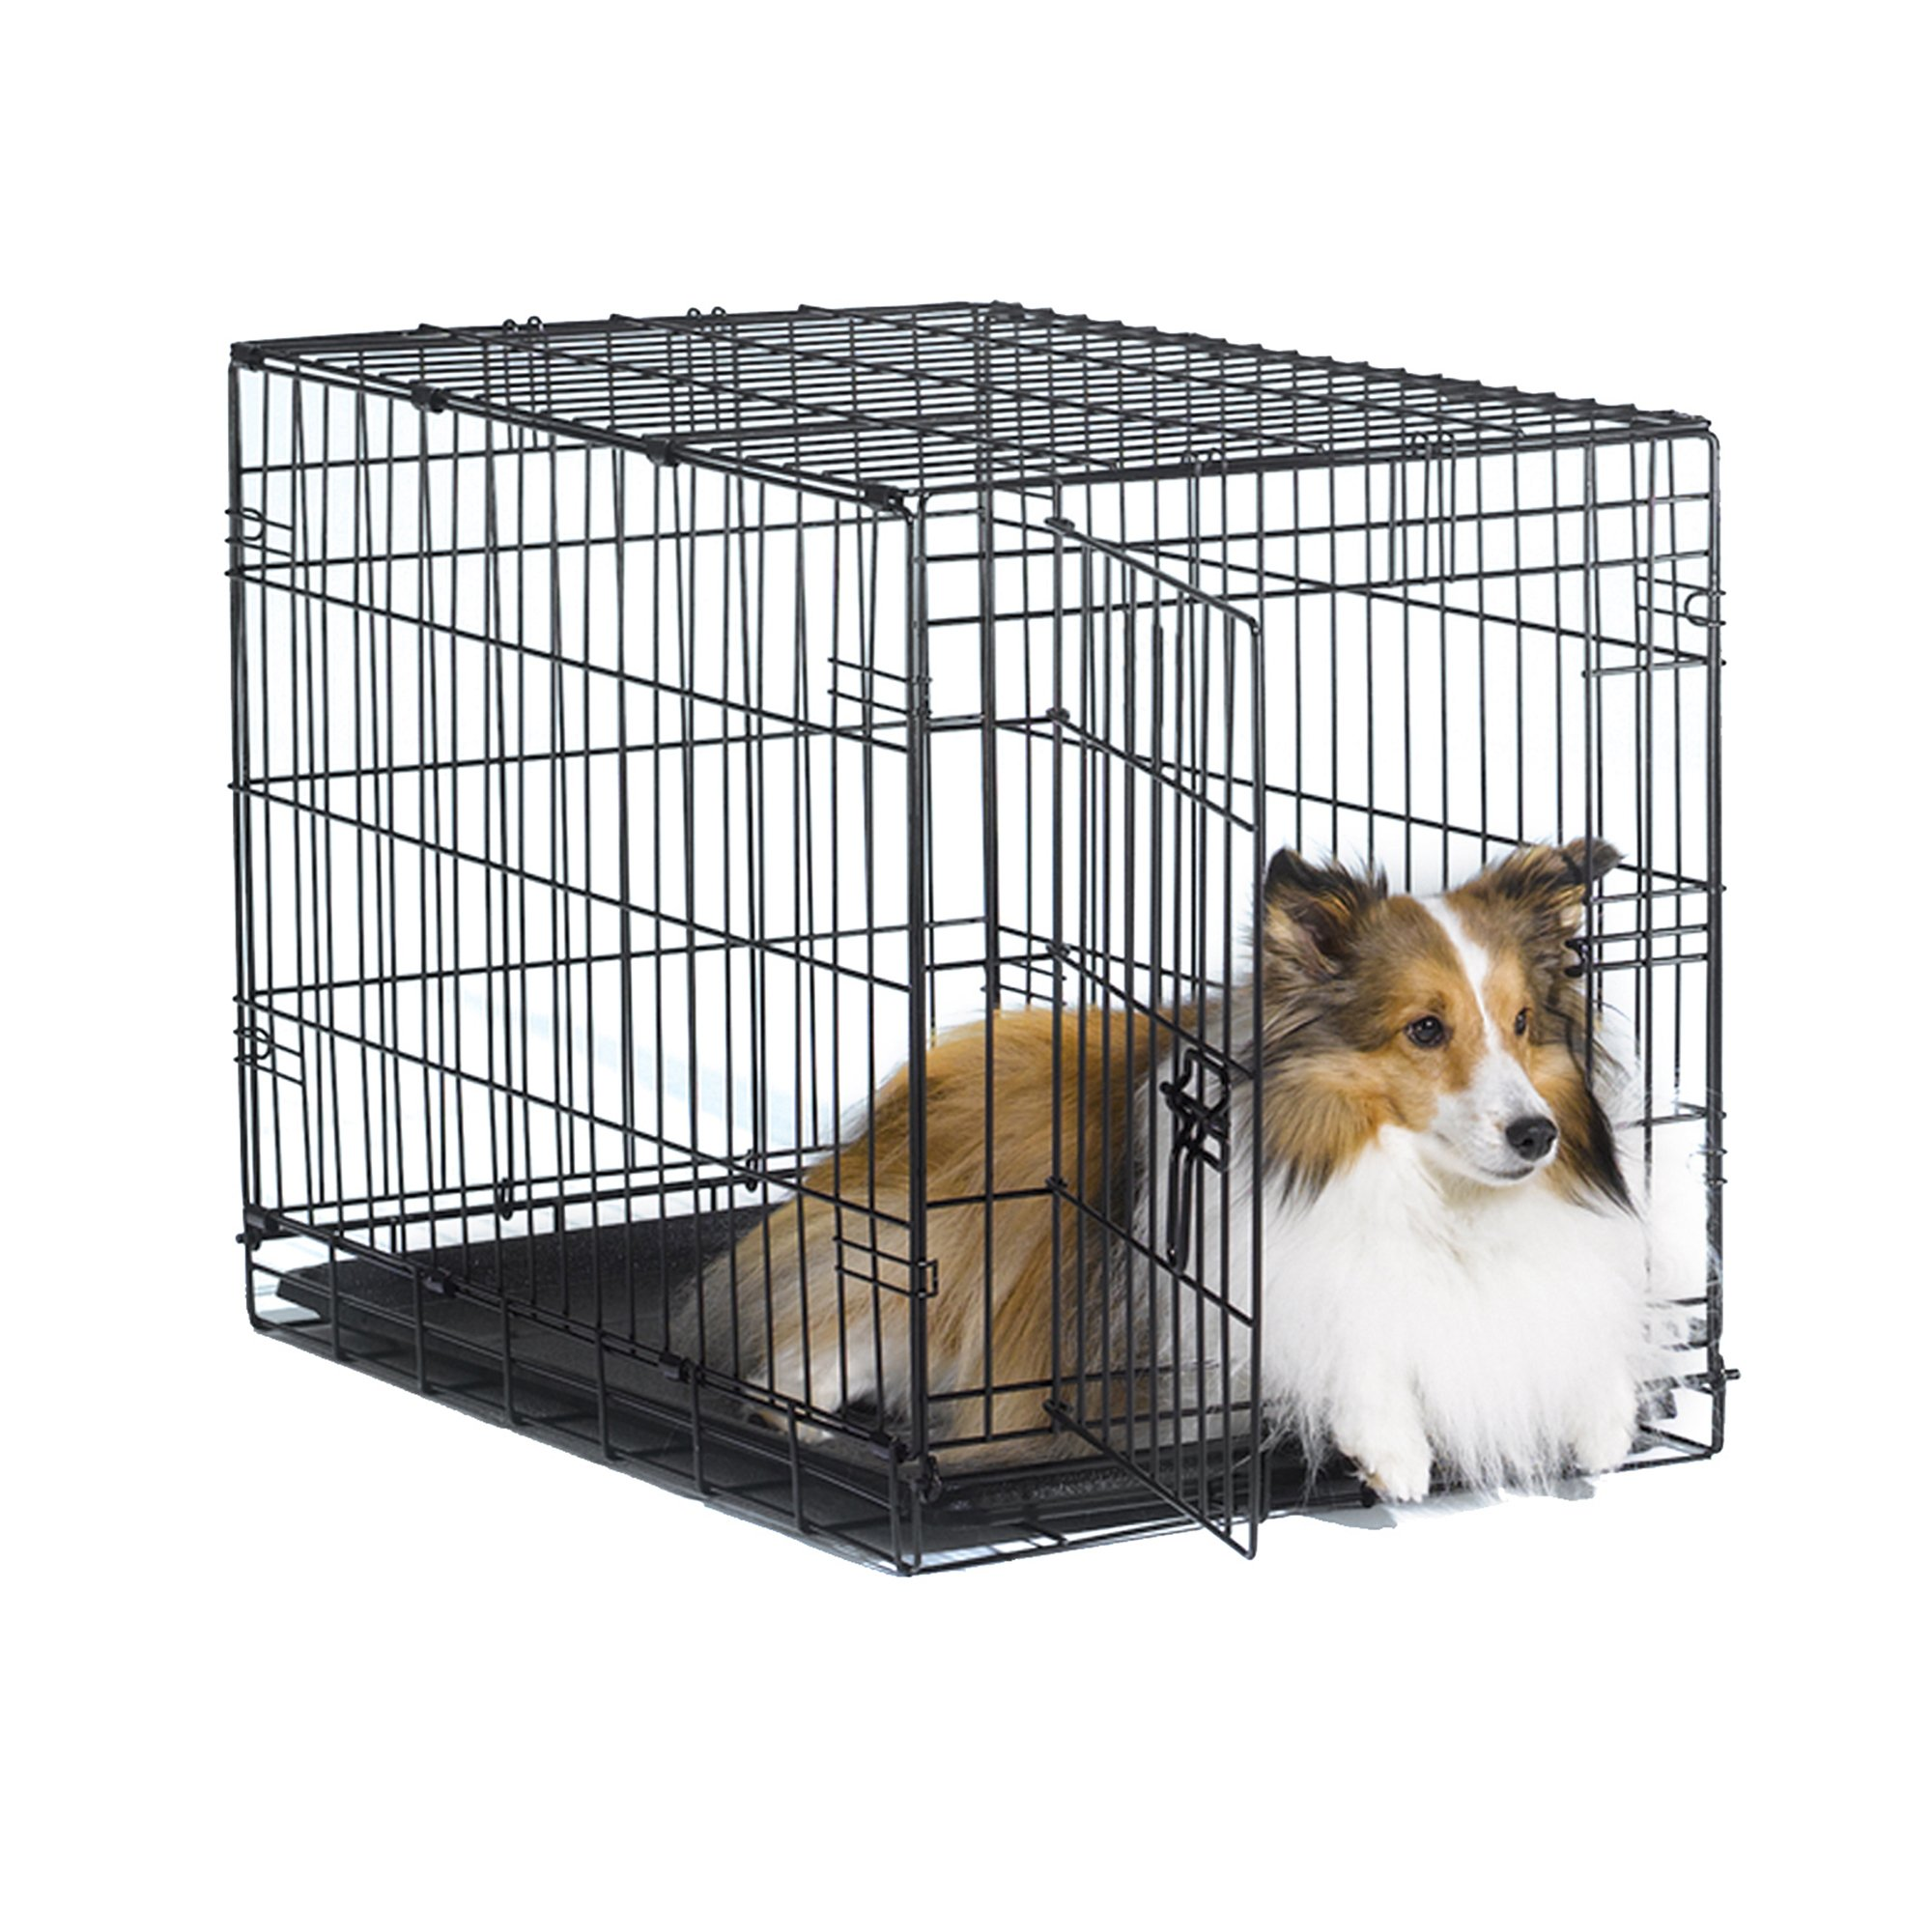 New World 30'' Folding Metal Dog Crate, Includes Leak-Proof Plastic Tray; Dog Crate Measures 30L x 19W x 21H Inches, For Medium Dog Breeds by New World Crates (Image #1)